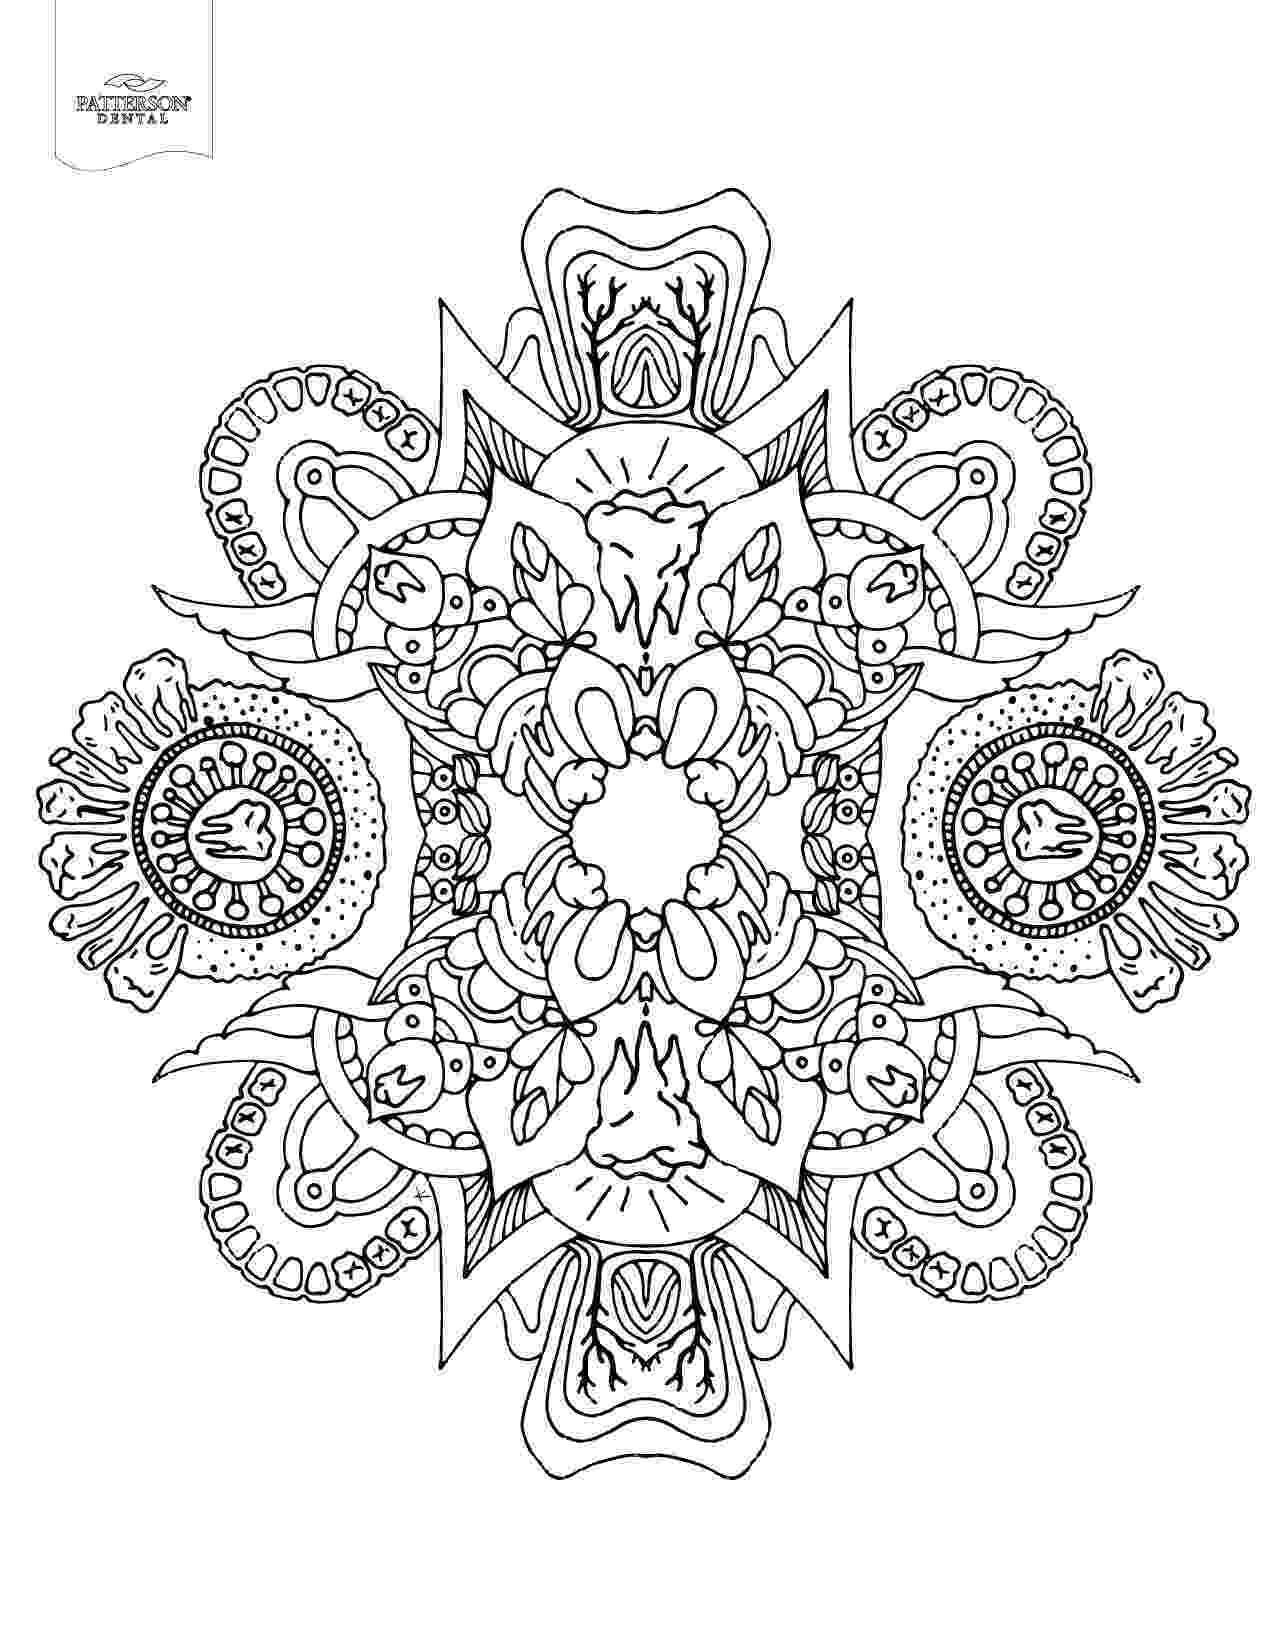 adult coloring pages abstract 10 toothy adult coloring pages printable off the cusp abstract coloring pages adult